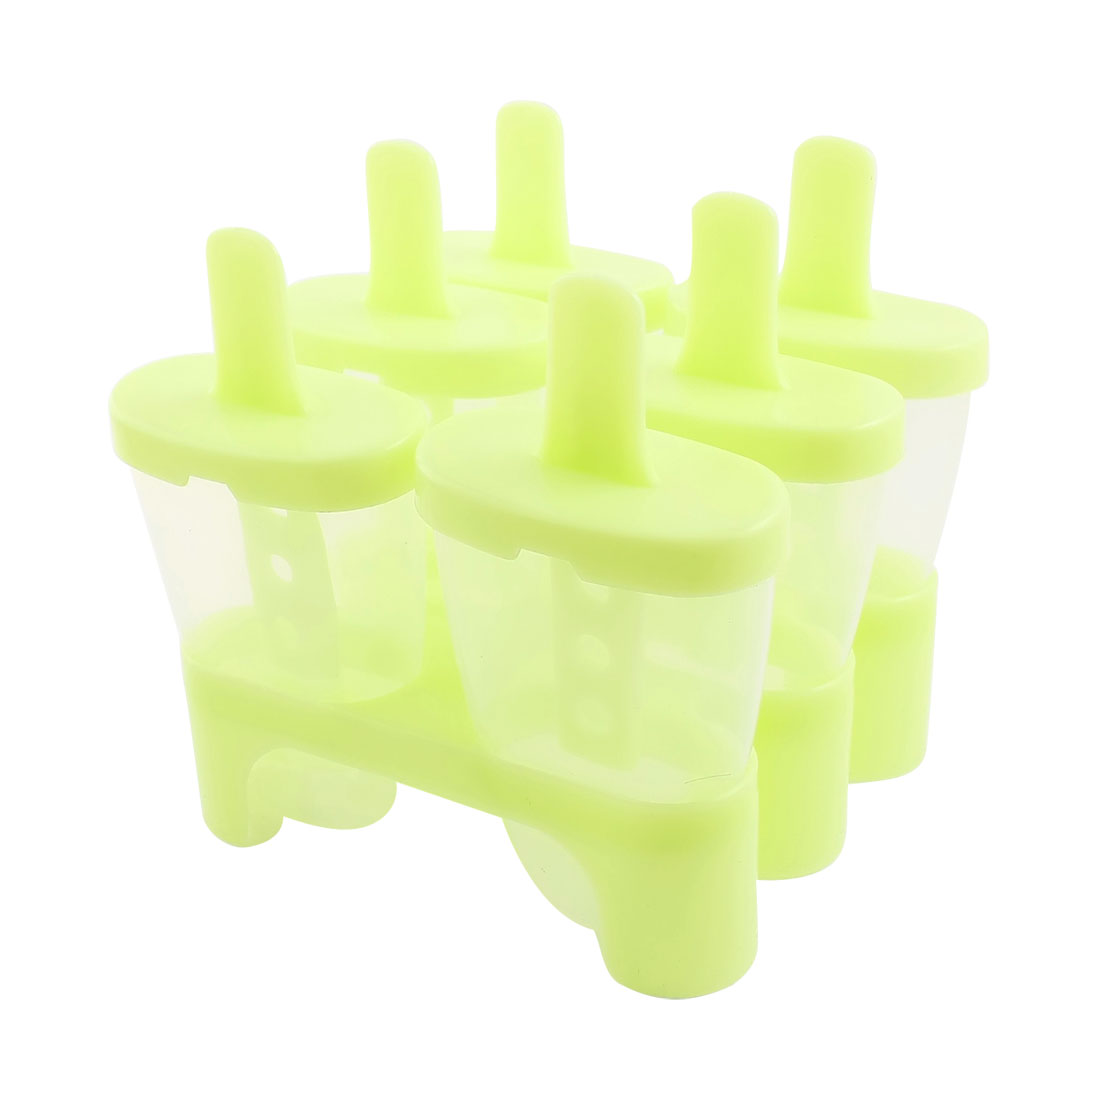 Yellow 6 Compartments Plastic DIY Candy Bar Maker Ice Cube Mold Mould